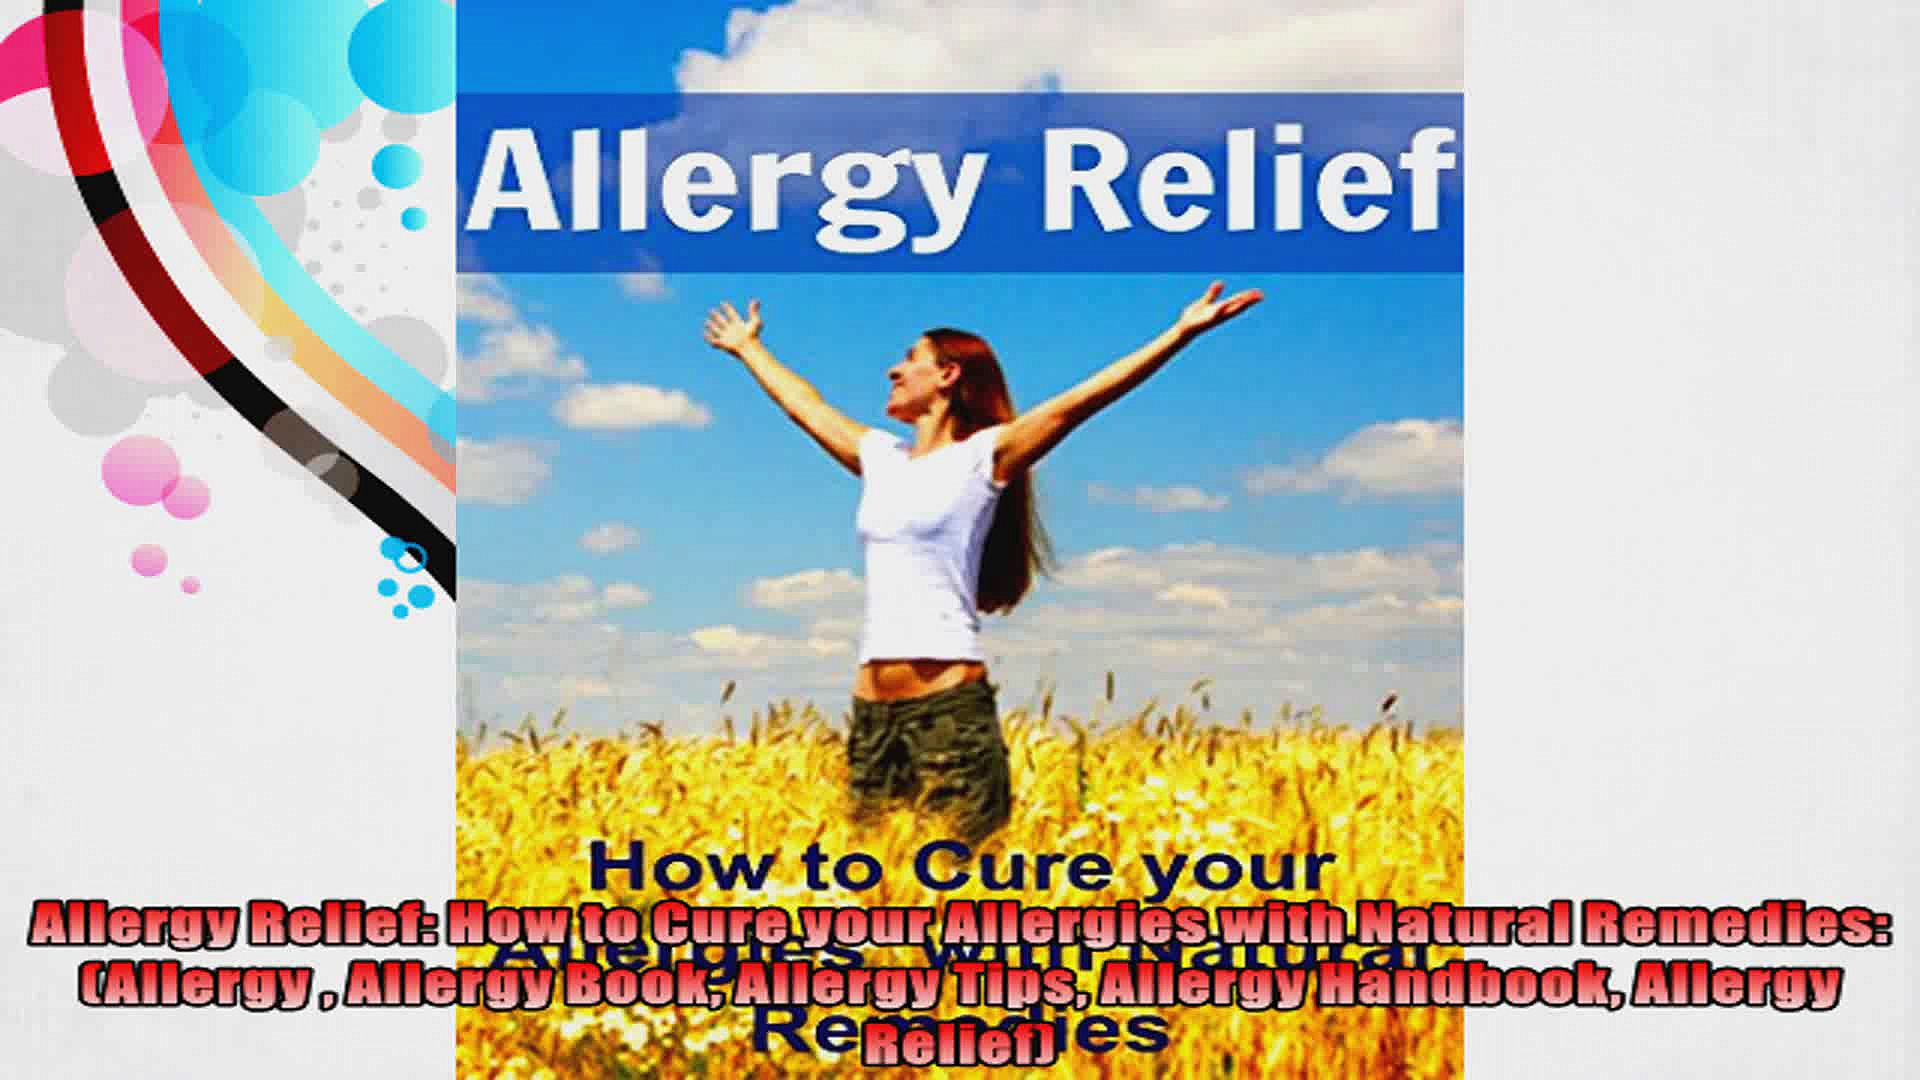 Allergy Relief How to Cure your Allergies with Natural Remedies Allergy  Allergy Book